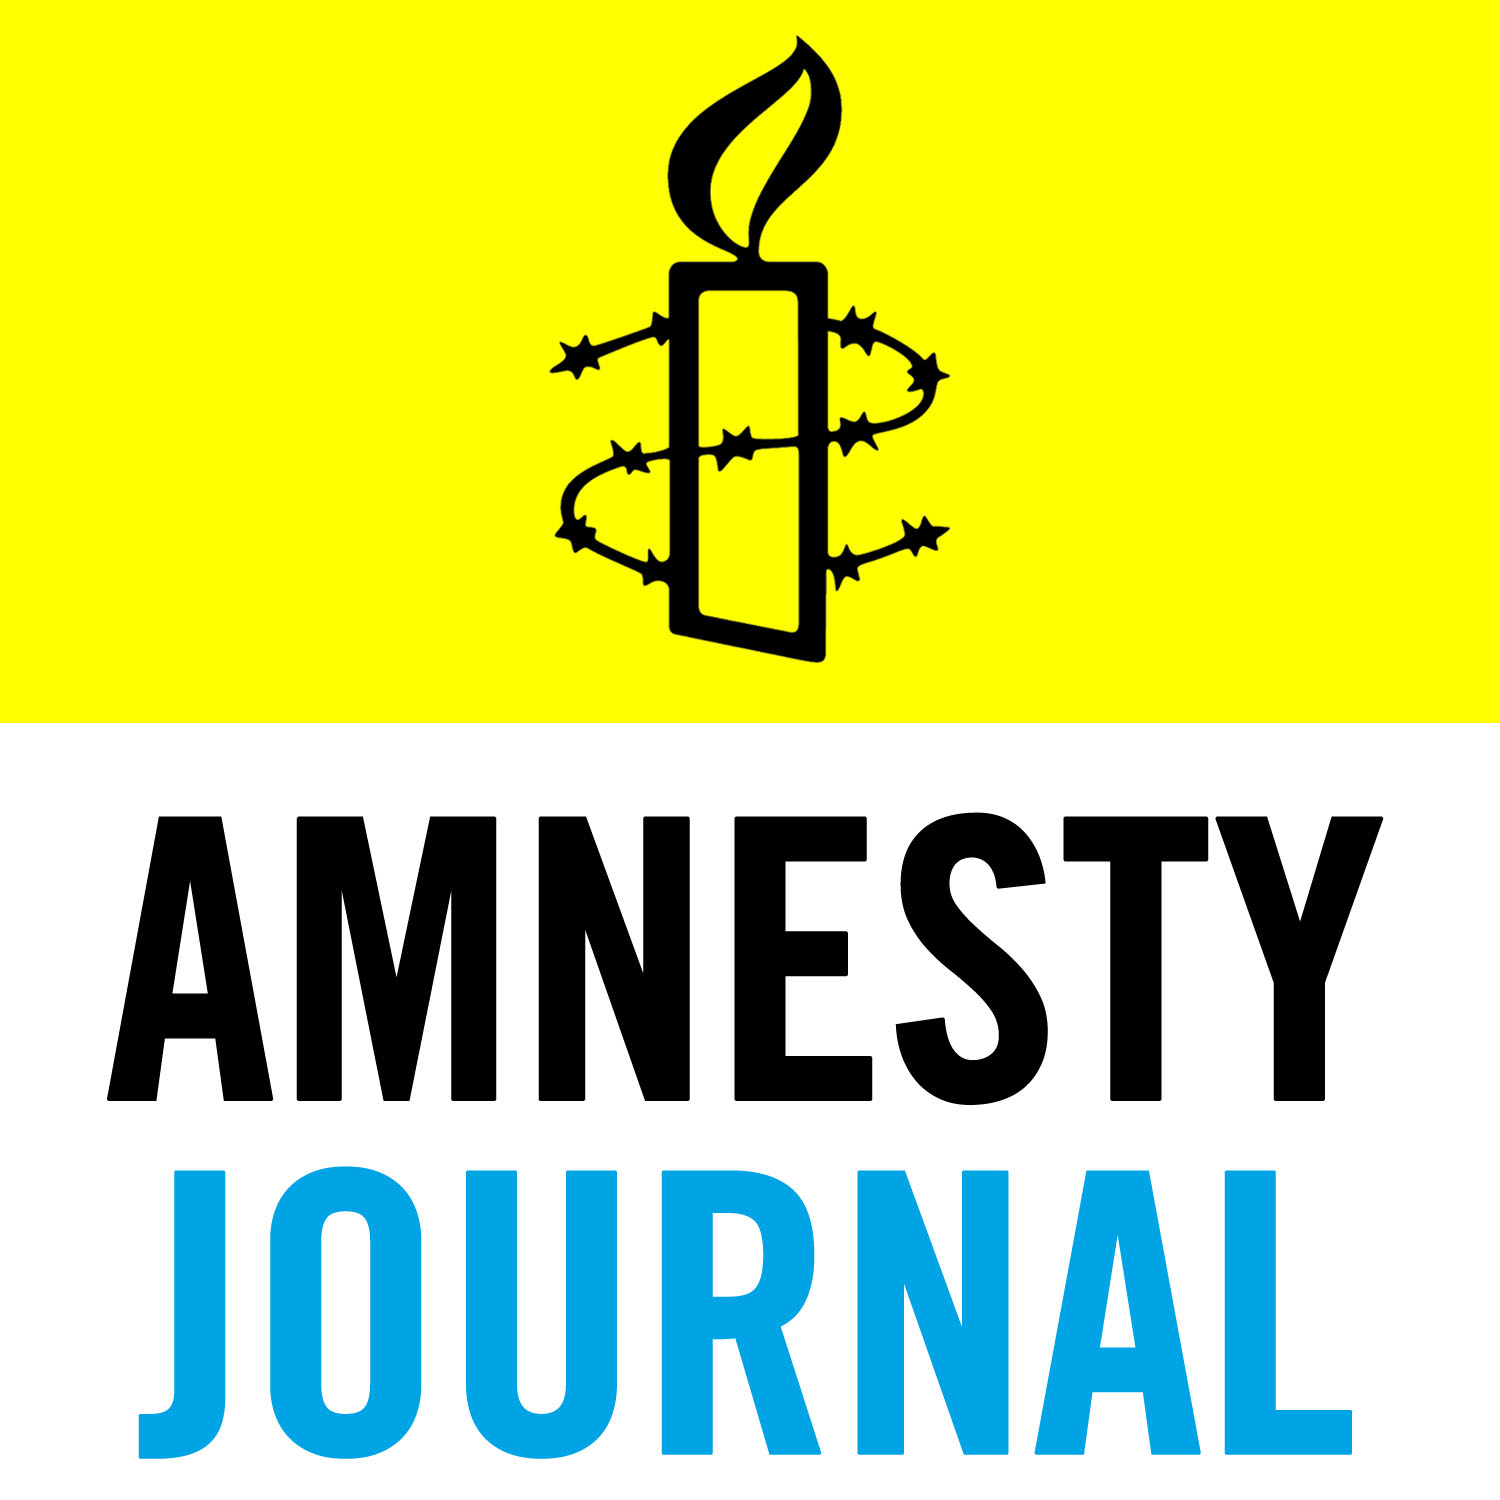 Amnesty Journal Podcast